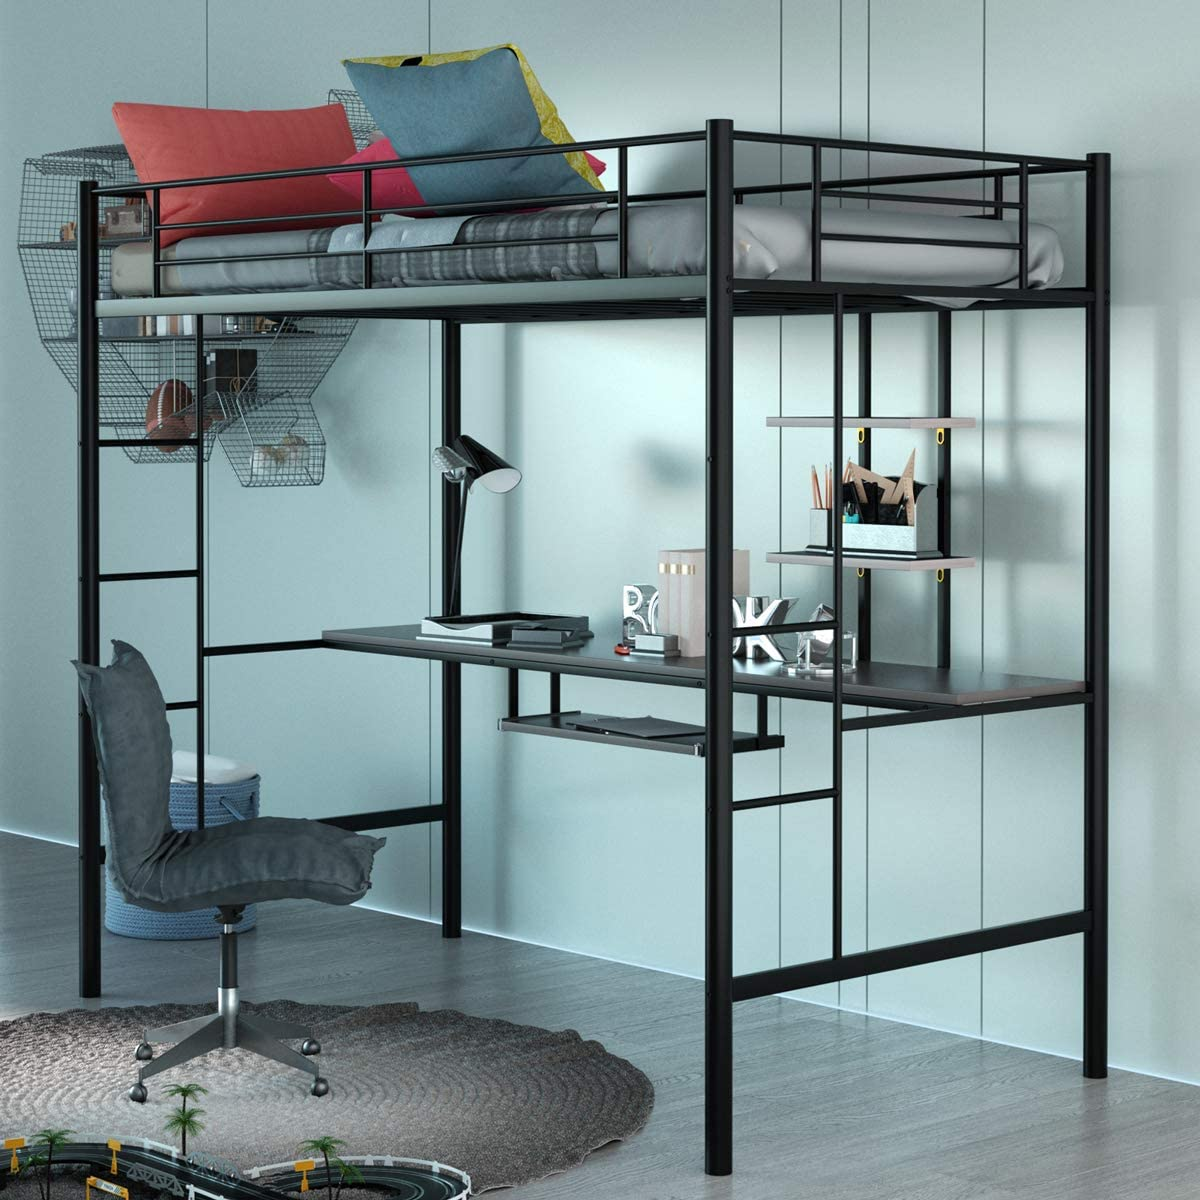 Giantex Metal Loft Bed Frame, Twin Size Bunk Bed with Bilateral Ladders, Guardrails, Desk and Bookcase, Space-Saving Loft Bed with Keyboard Tray for Boys & Girls Teens (Twin, Black)